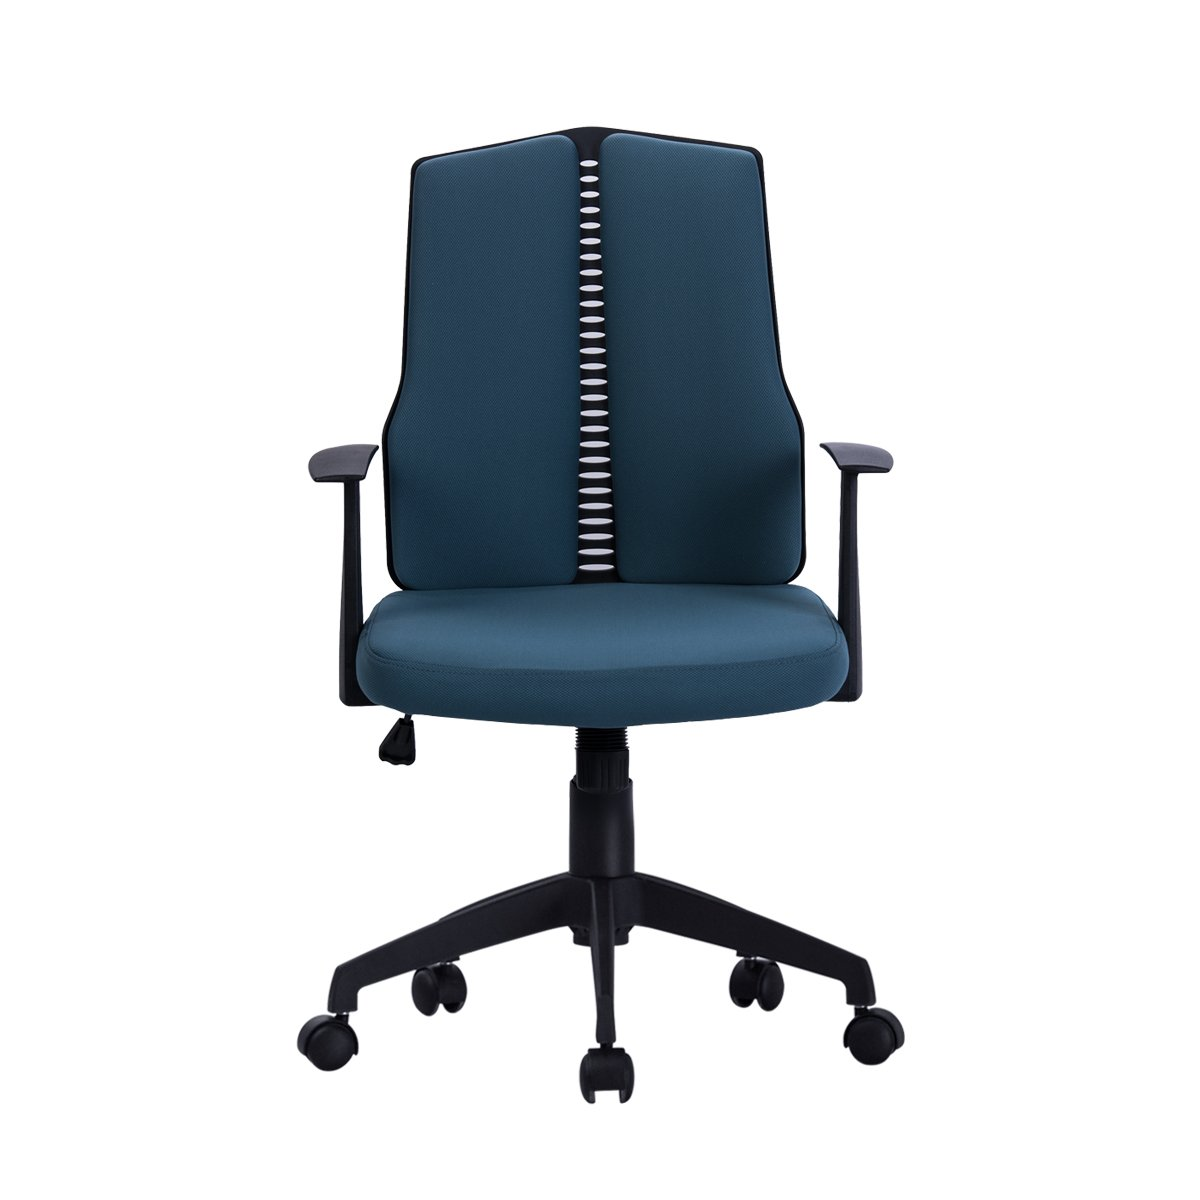 Sunmae Ergonomic Mid-Back Task Chair, Office Chair, Adjustable Computer Desk Swivel Chair - Dark Blue